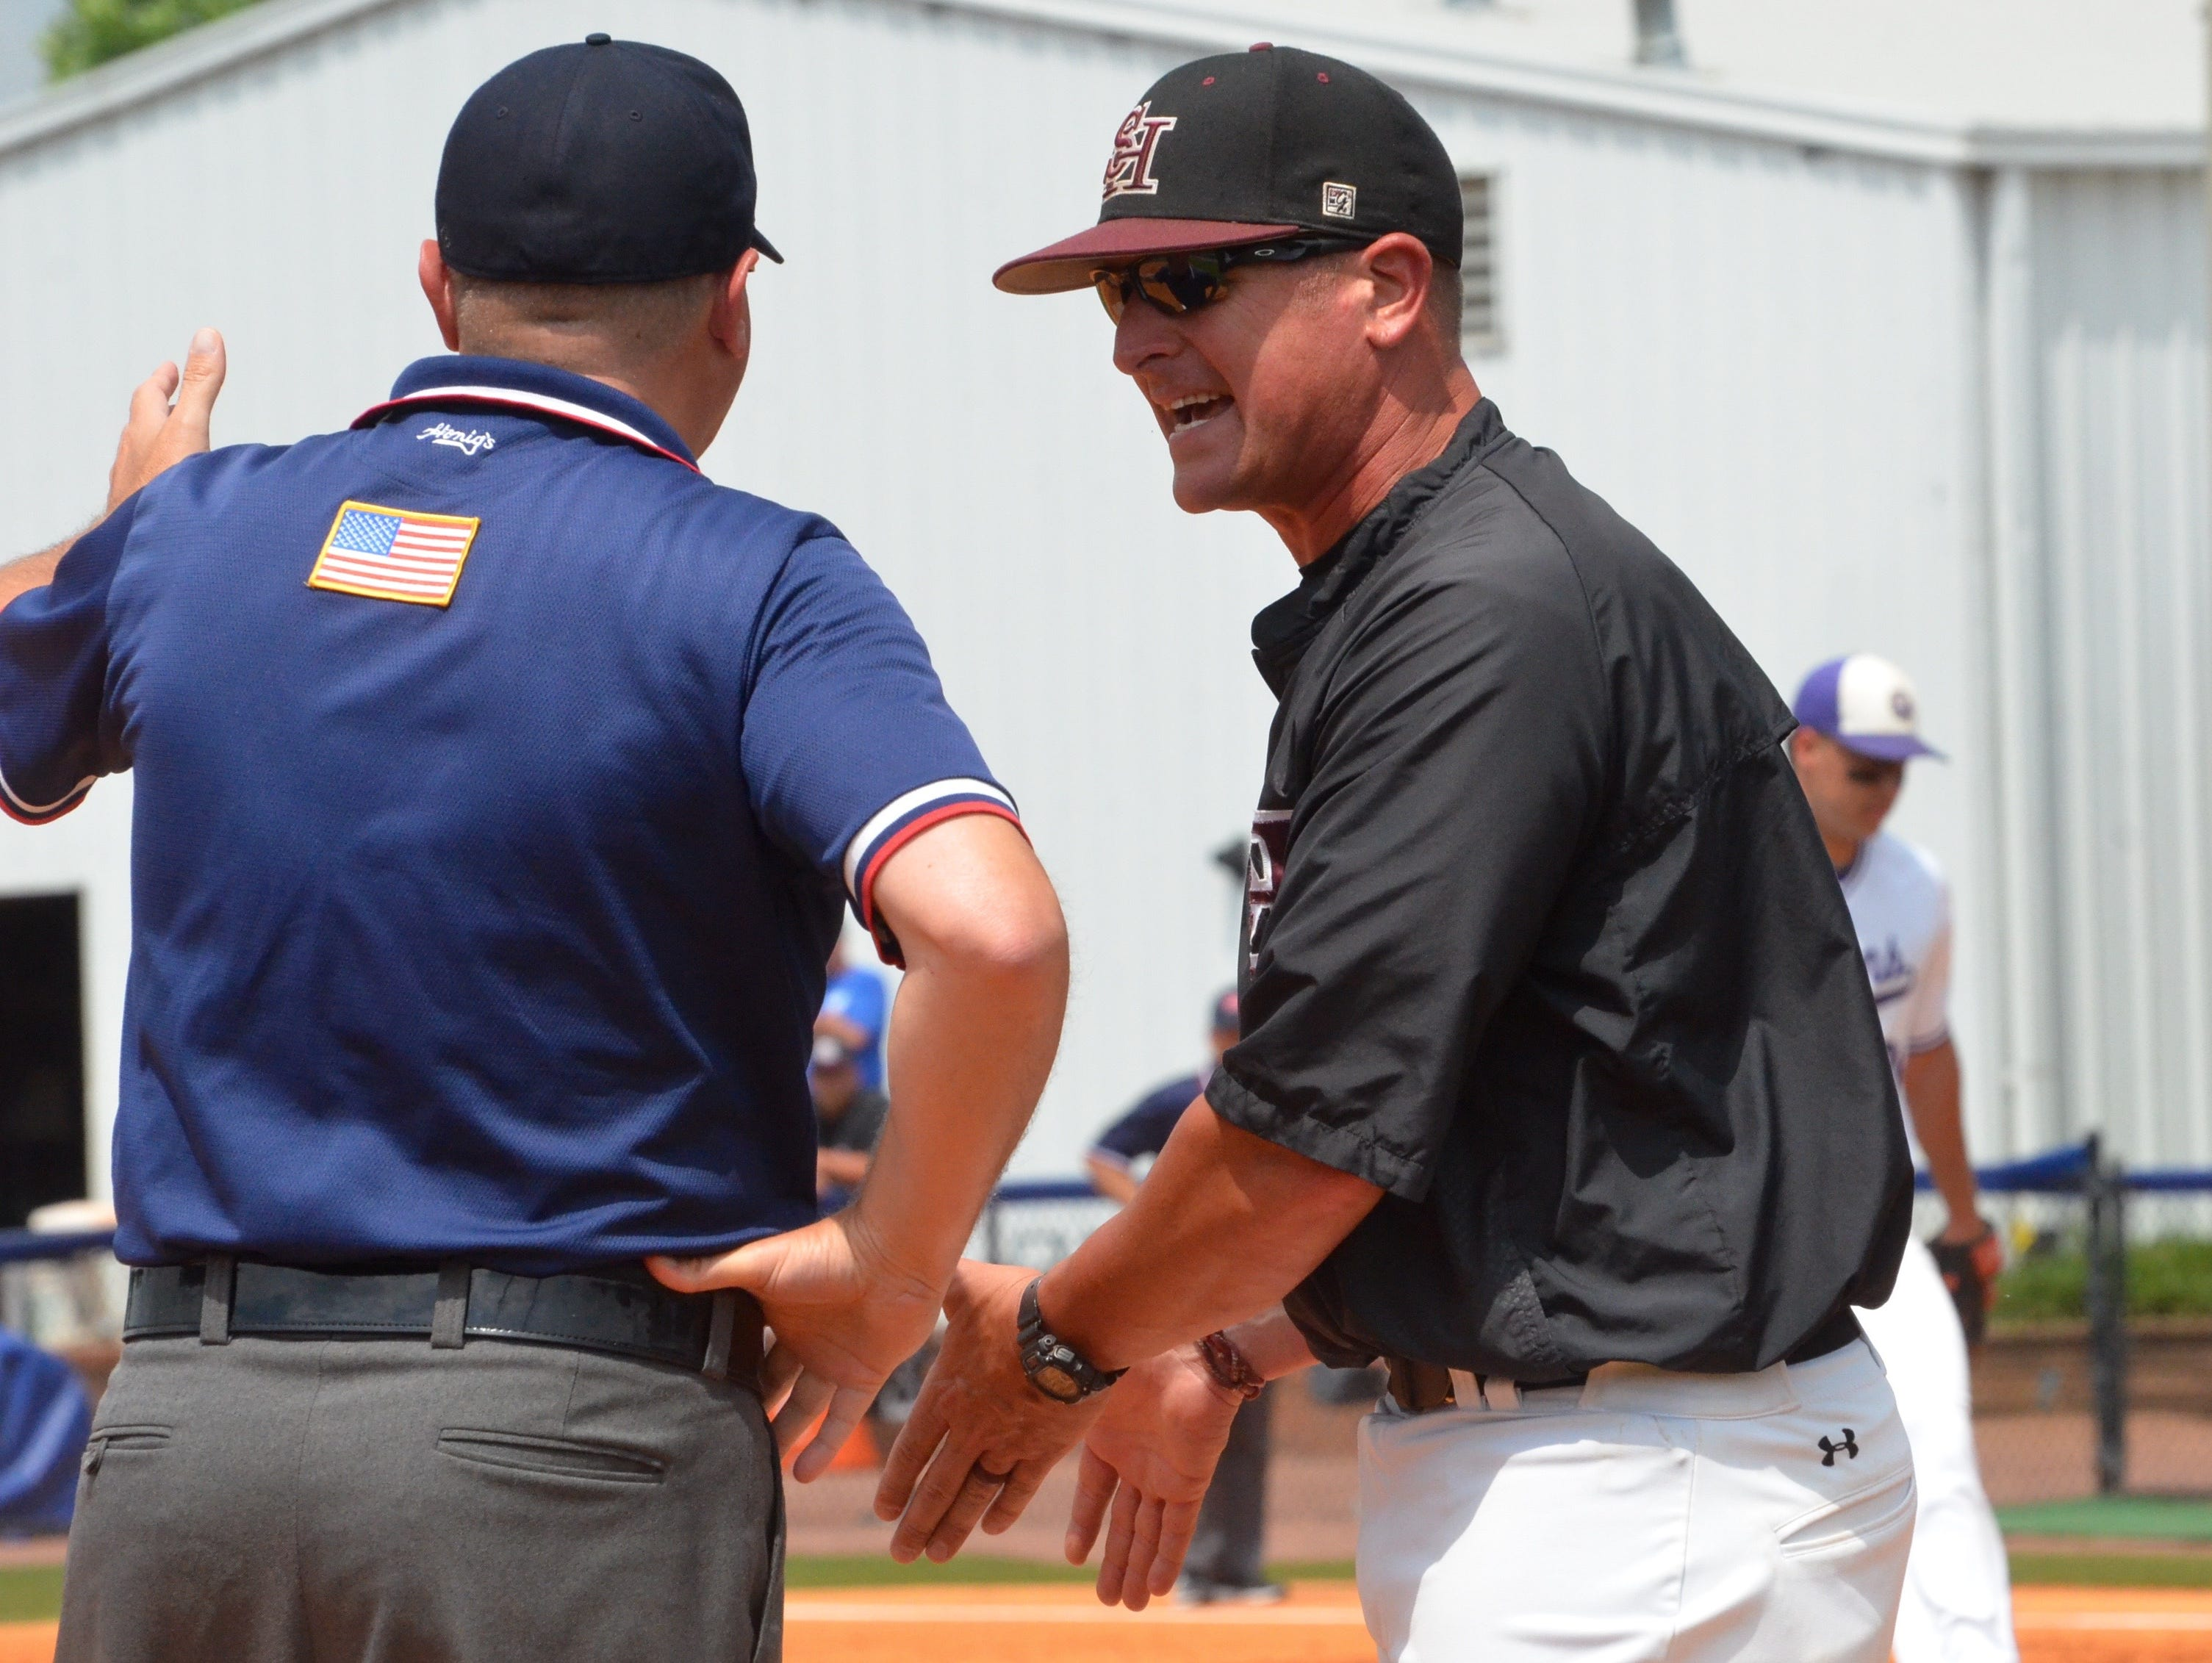 Spring Hill coach Paul Lamm talks to the third base umpire during Friday's TSSAA Class AA state baseball championship game at MTSU's Reese Smith Jr. Field.